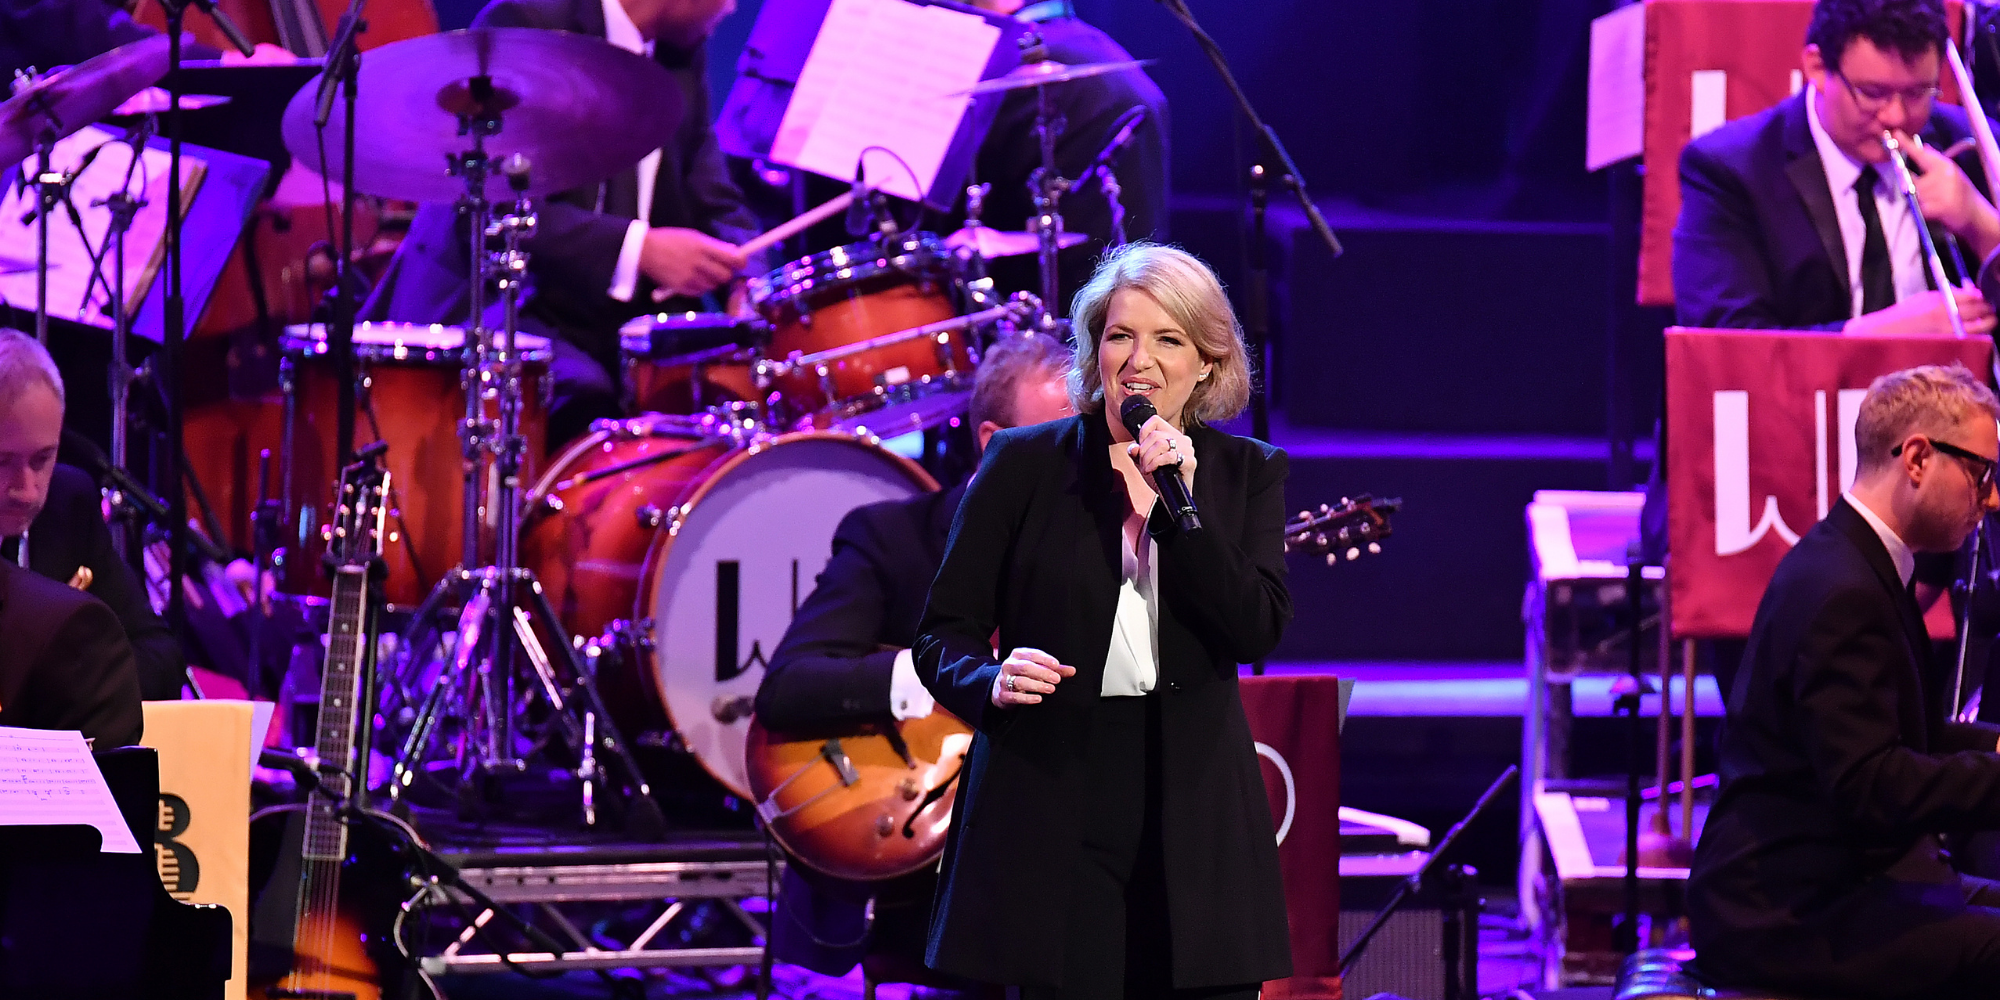 Clare Teal & Her Band